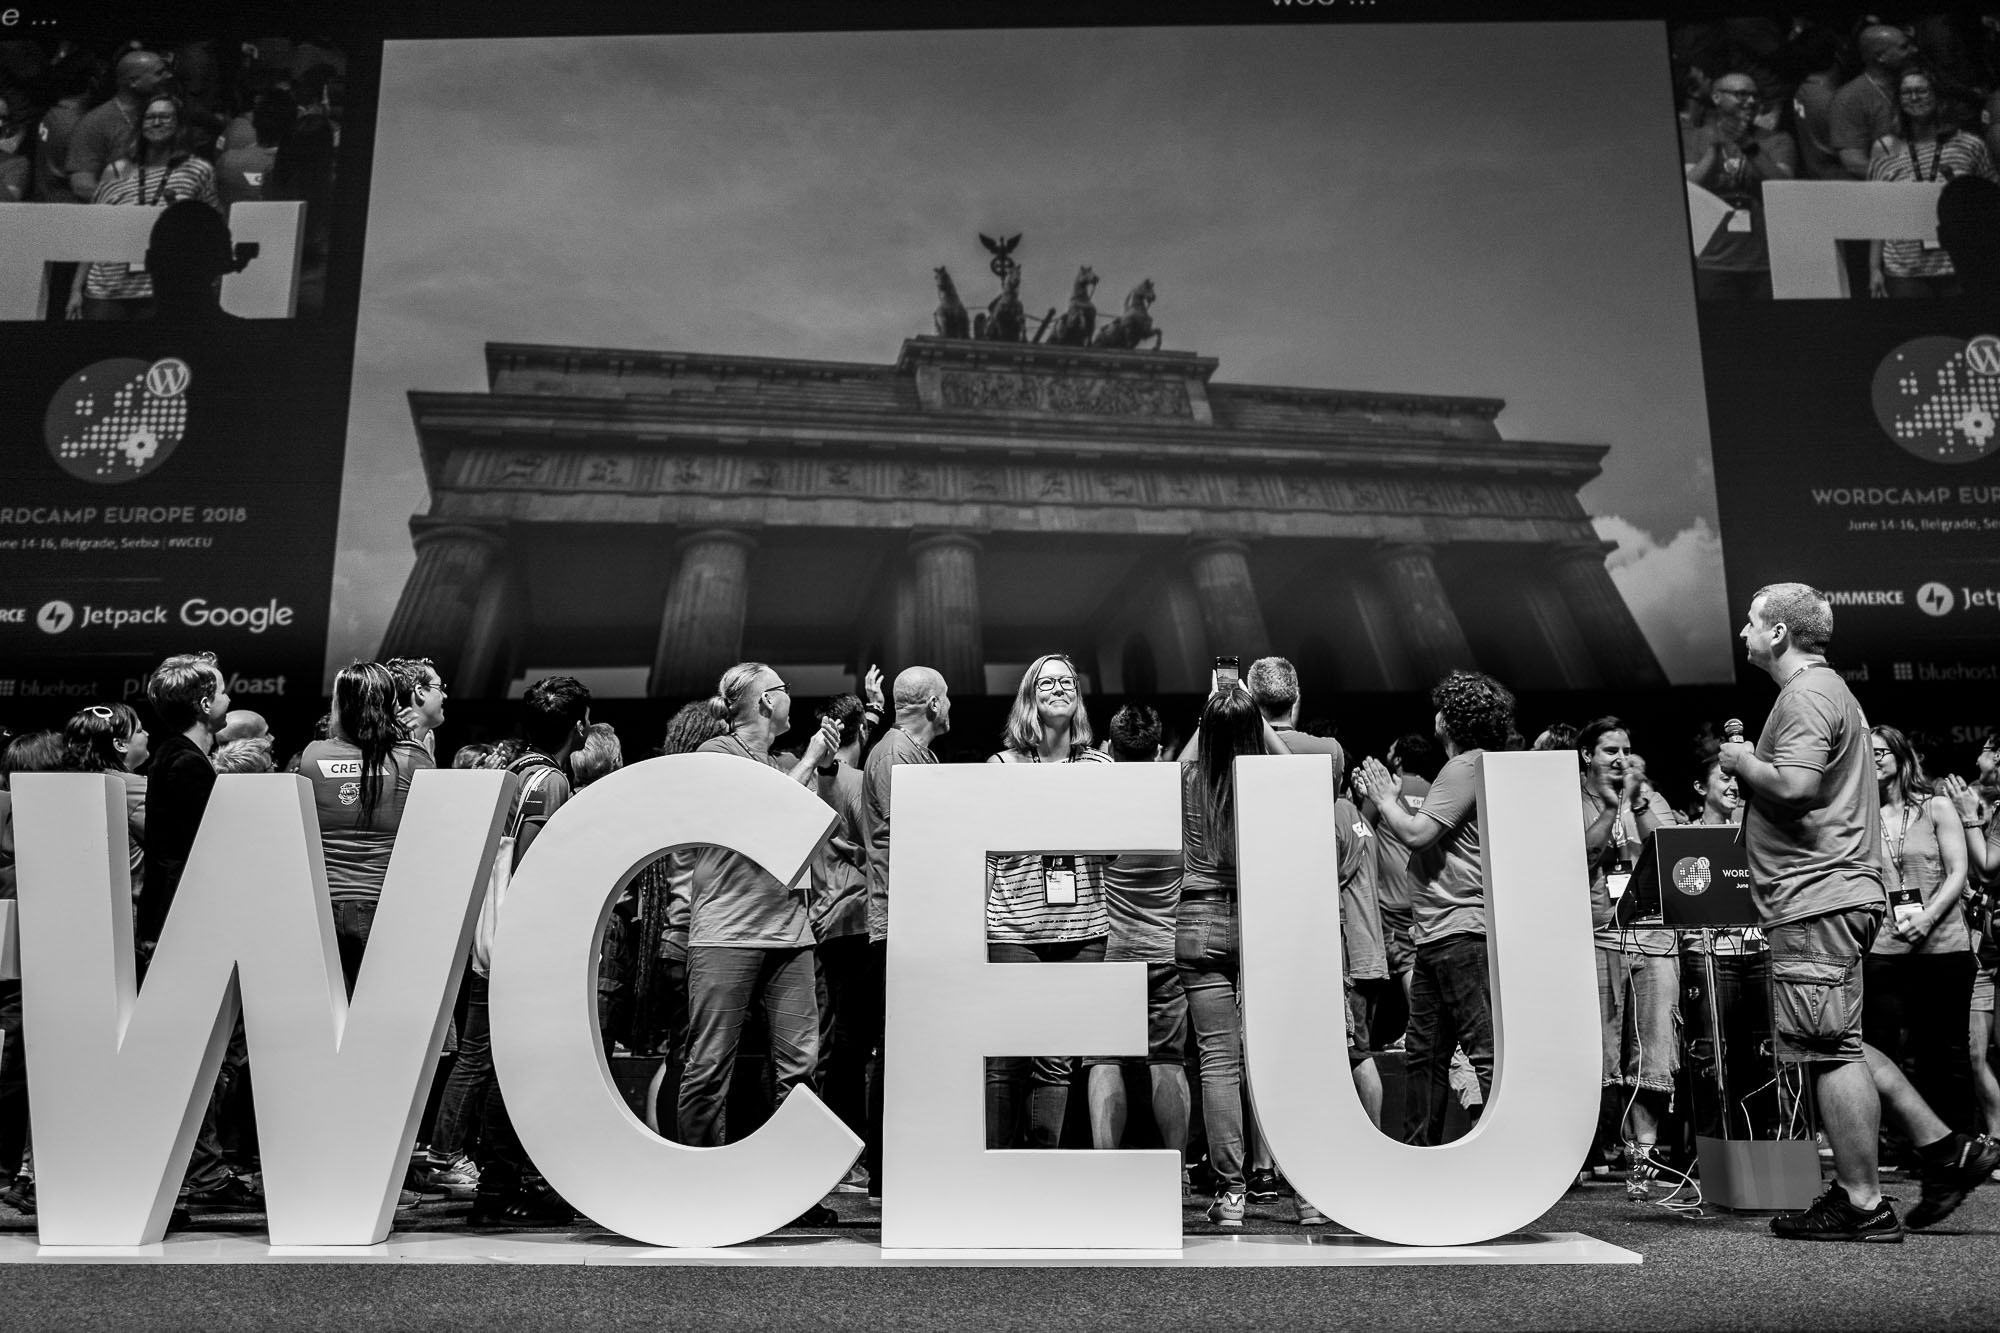 Organizers and volunteers behind the WCEU hashtag, the projected image of the Brandenburg Gate above them